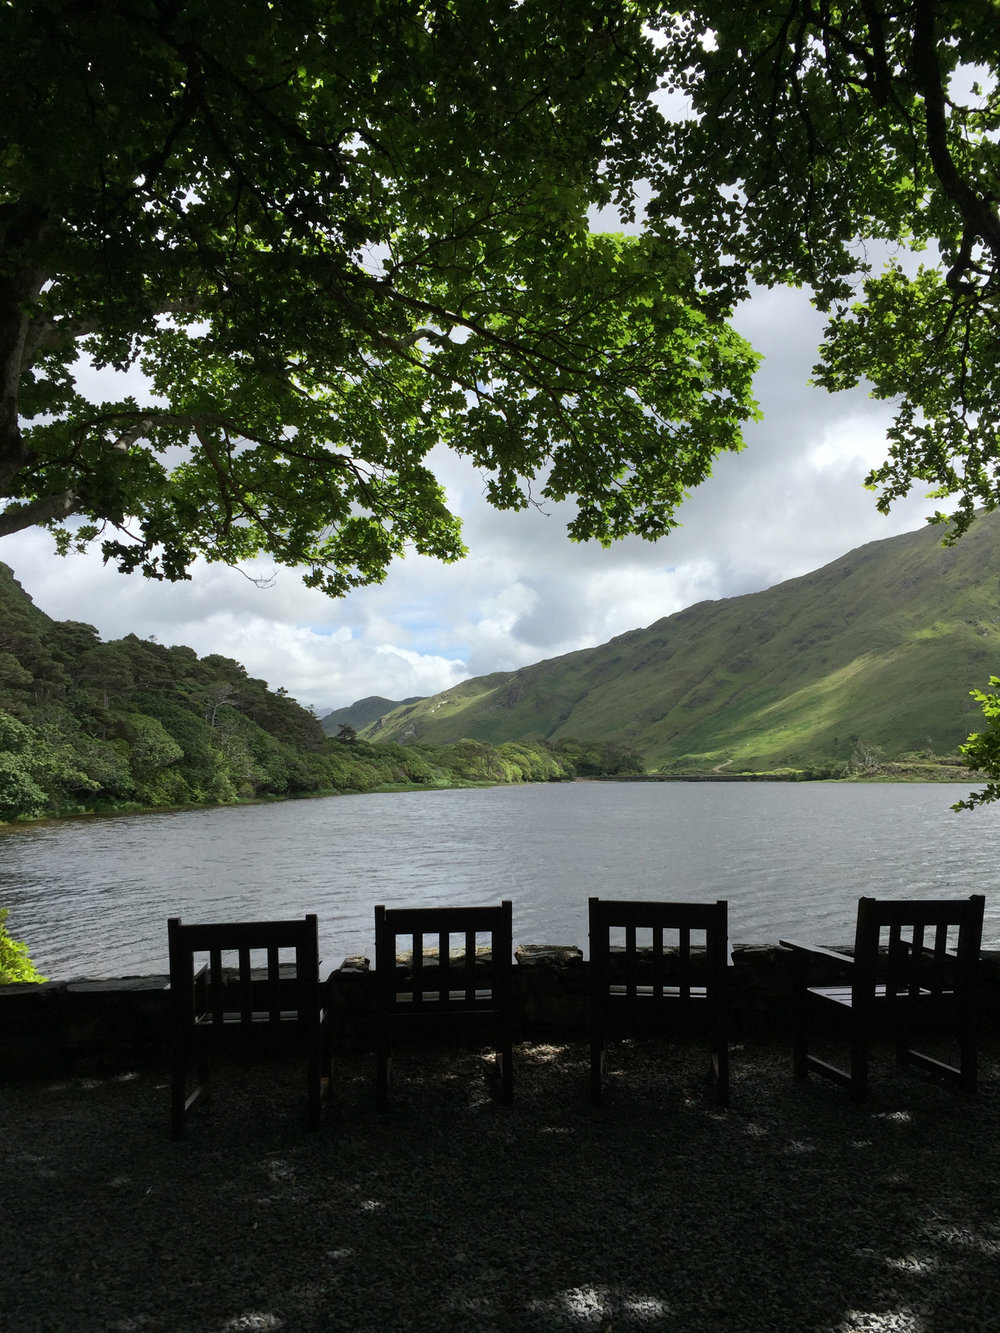 Lovely spot to sit and enjoy the natural surroundings and views!